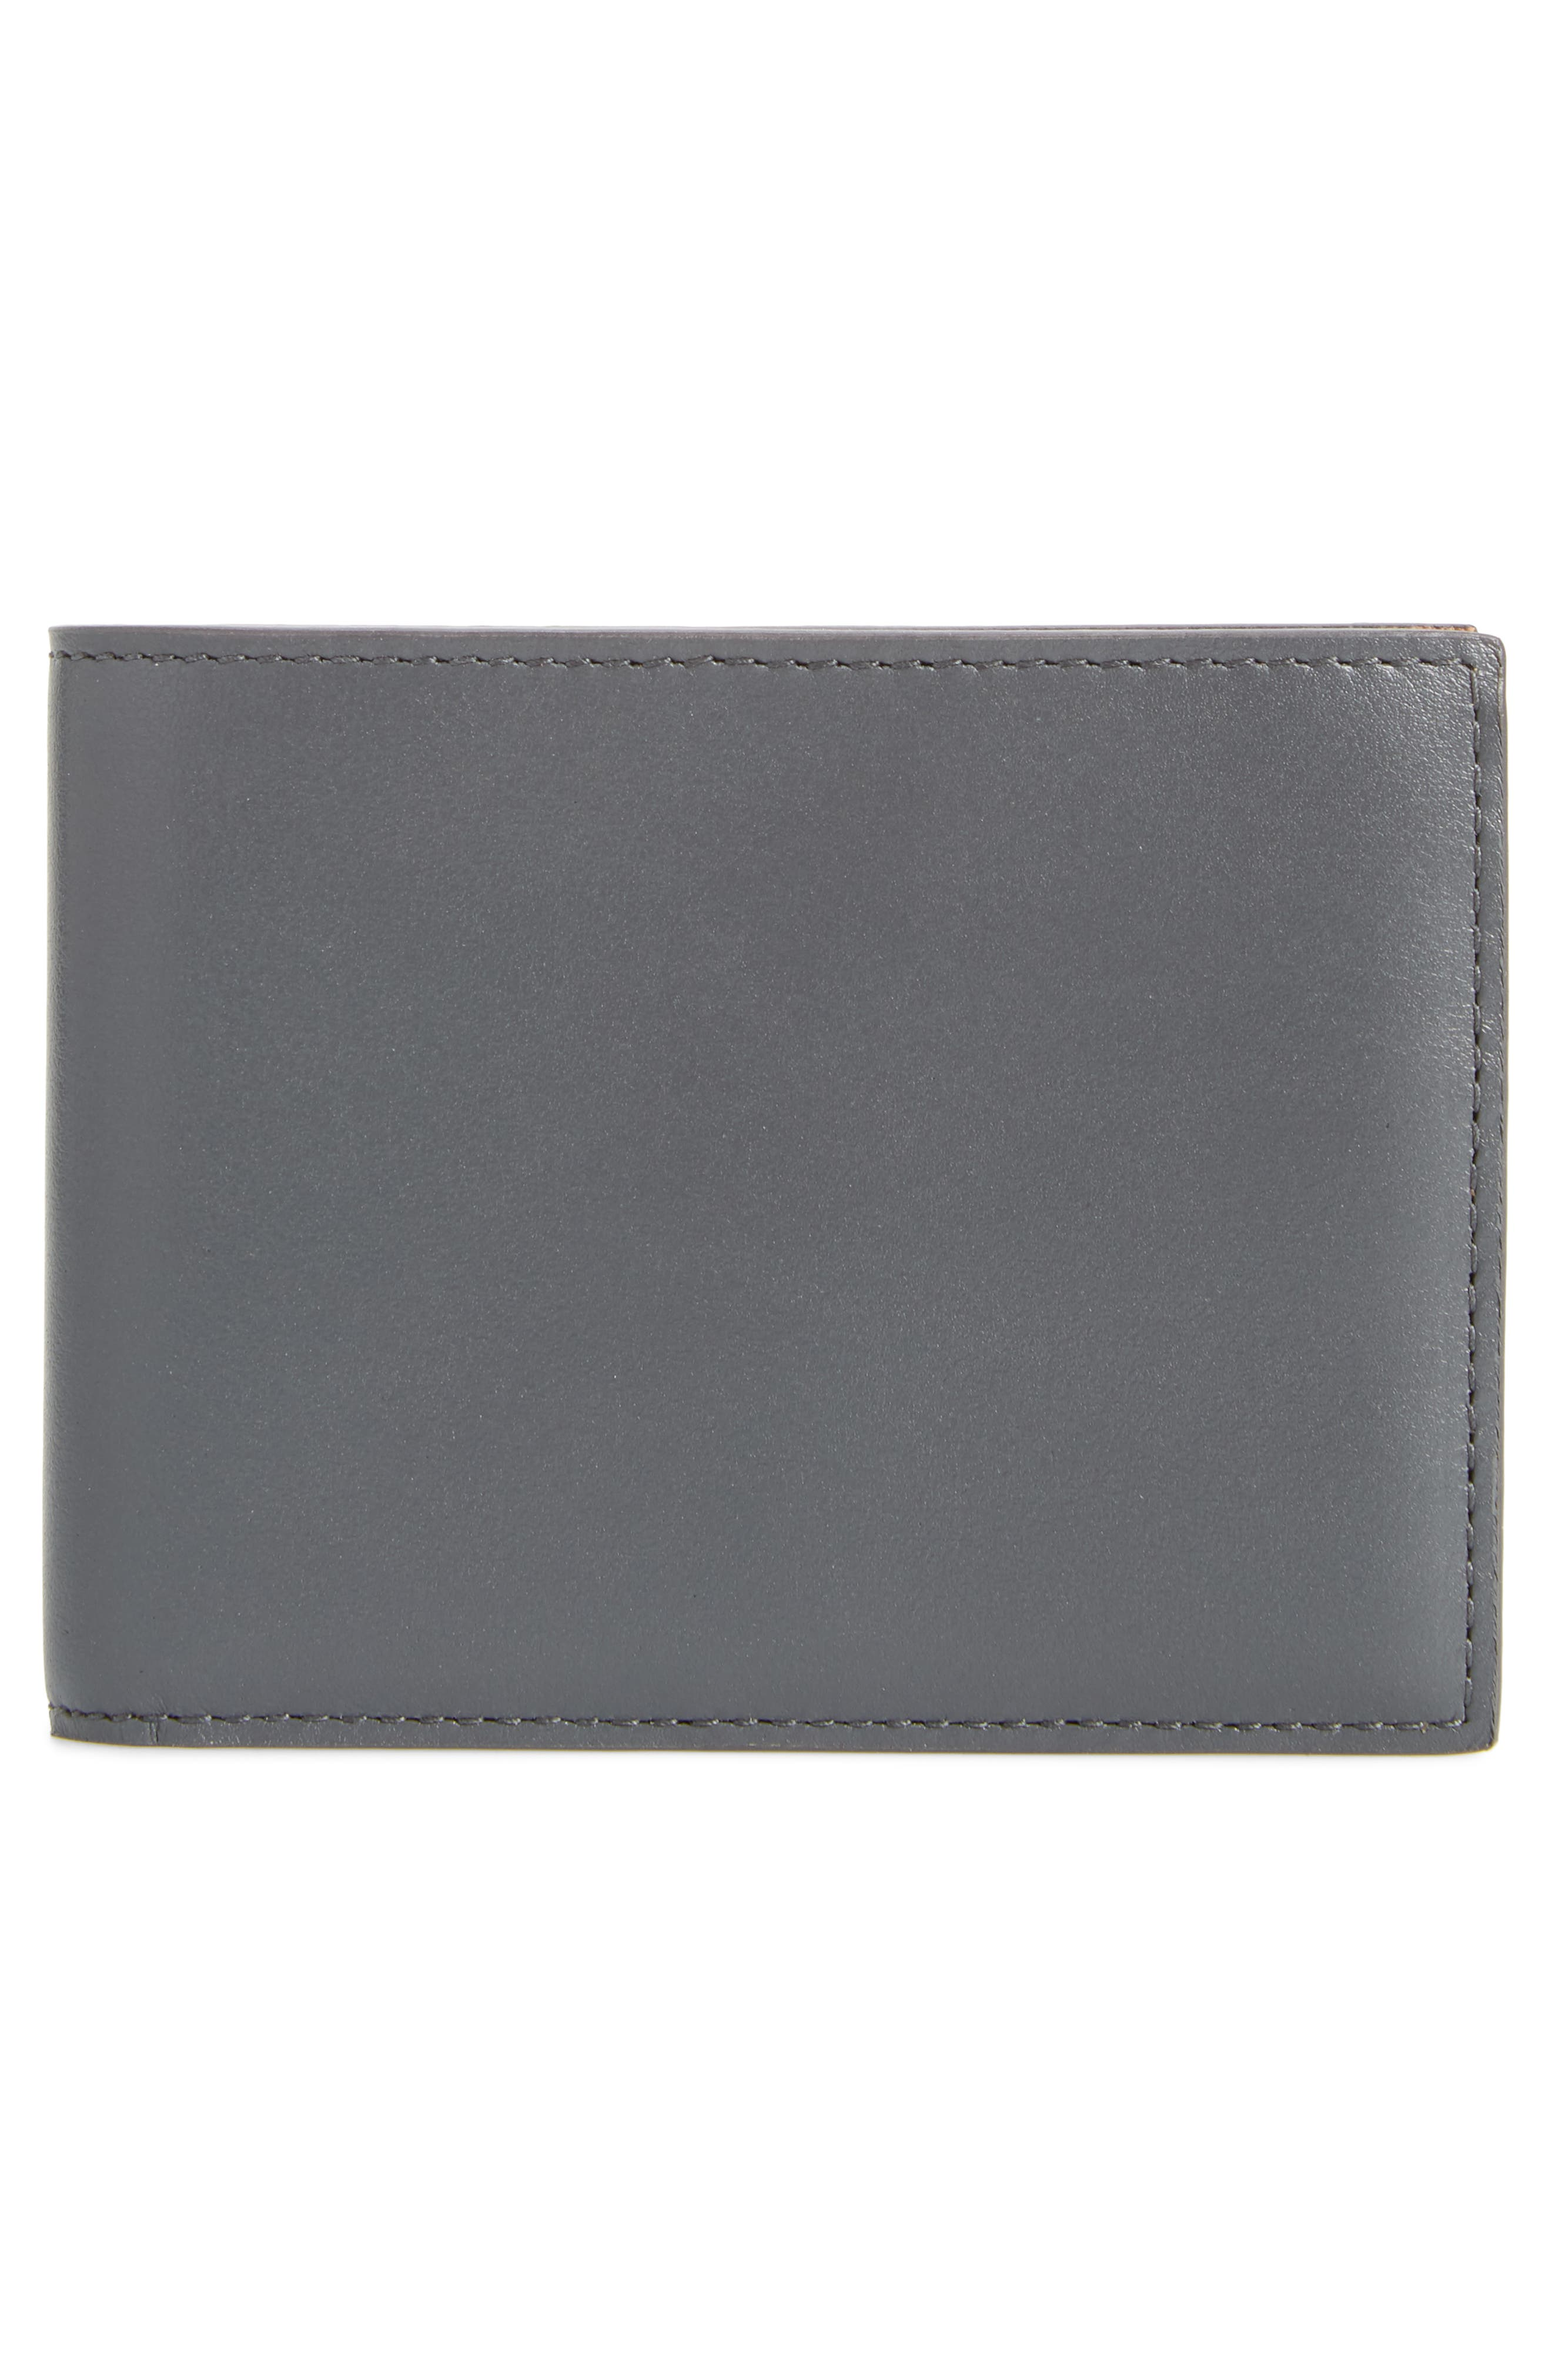 Leather Wallet,                             Alternate thumbnail 3, color,                             BLUE/ GREY